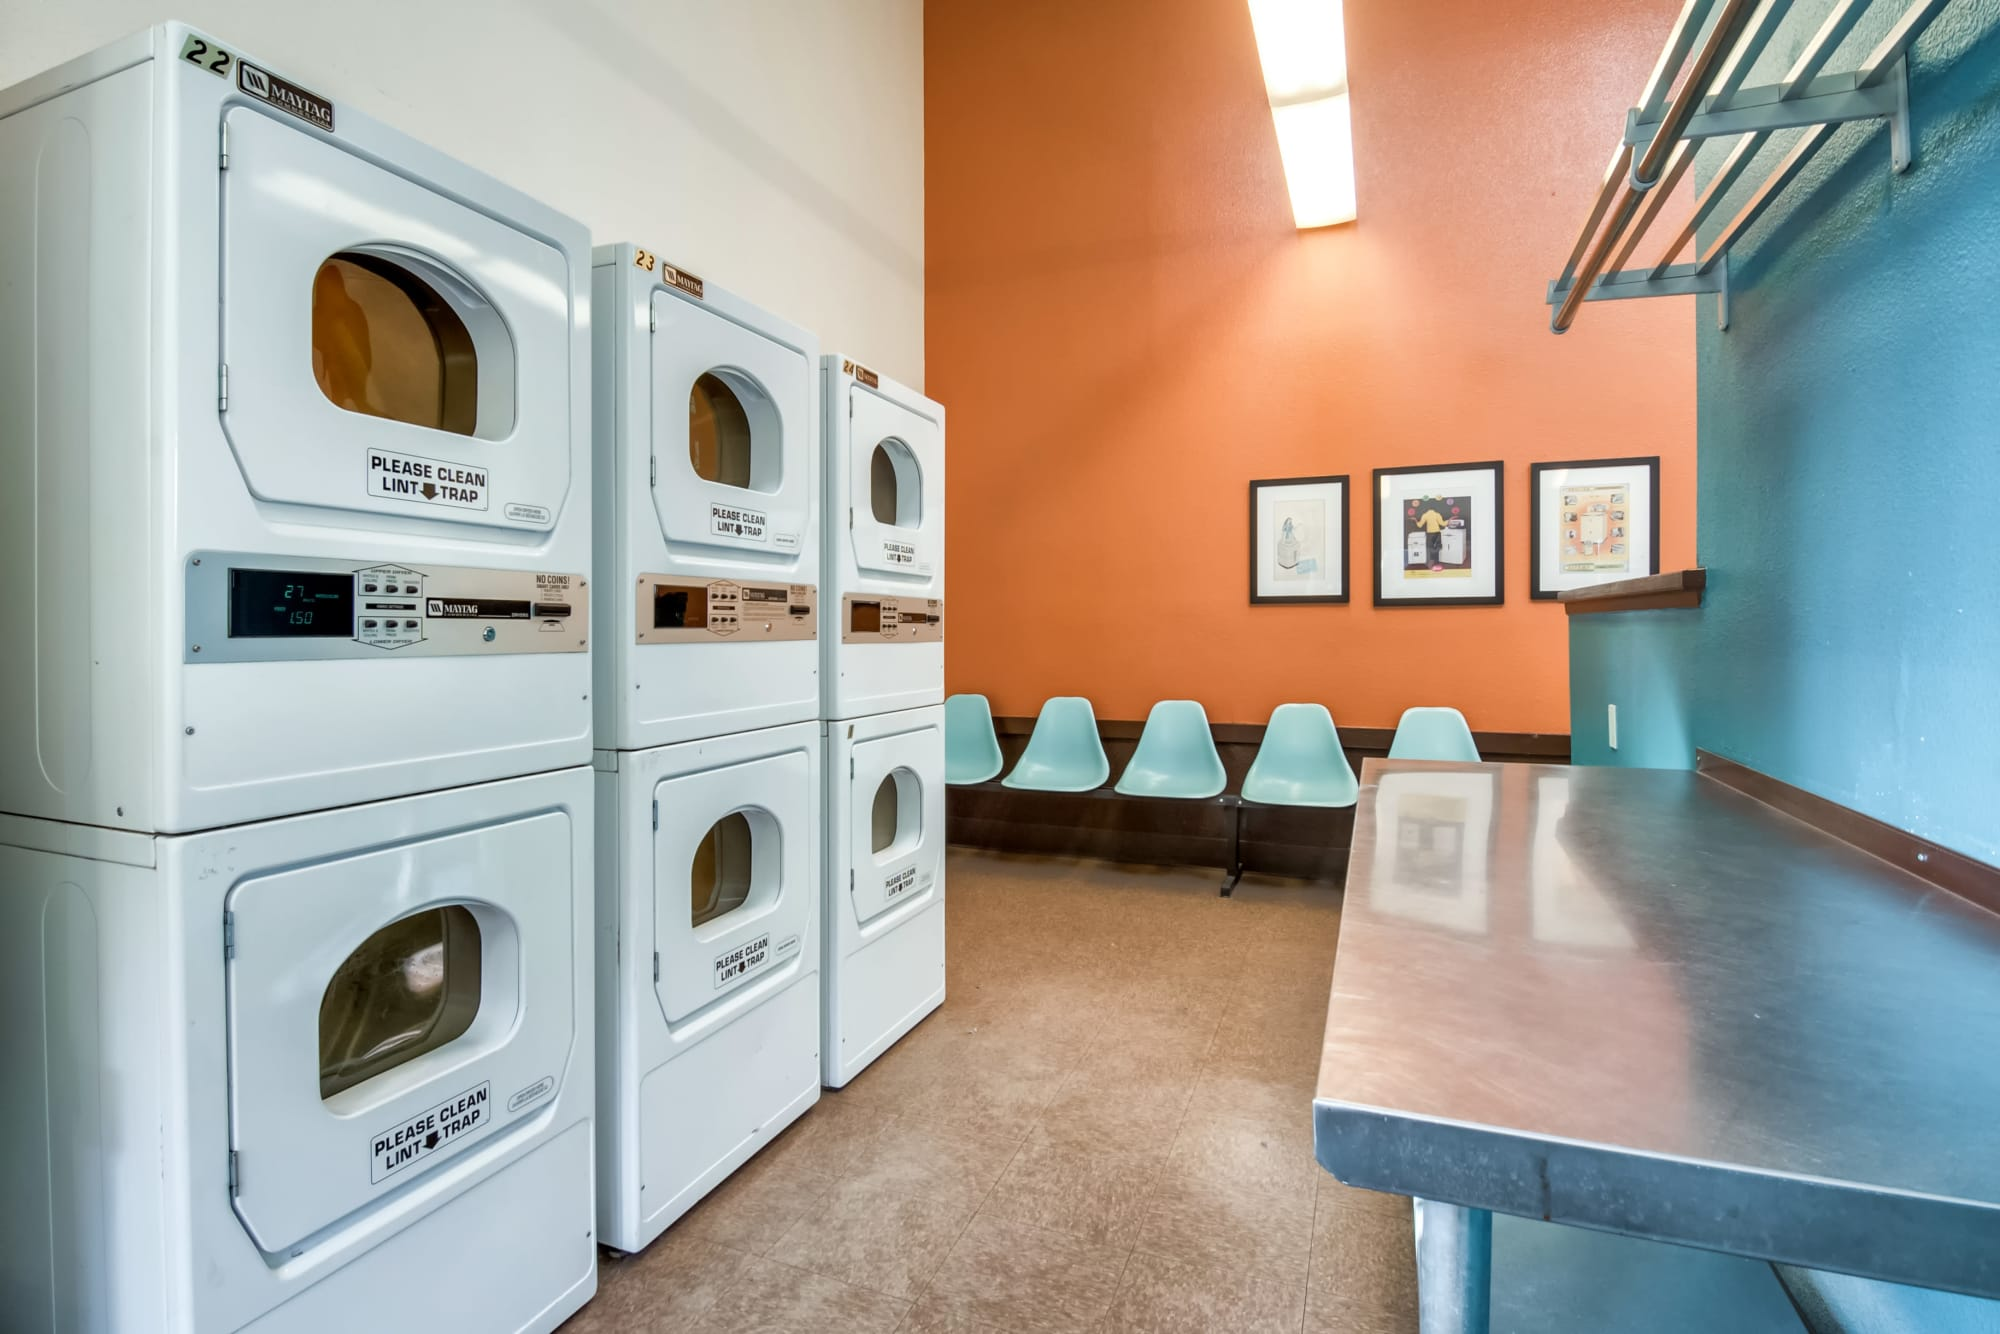 On-site laundry facility Terra Nova Villas  in Chula Vista, California